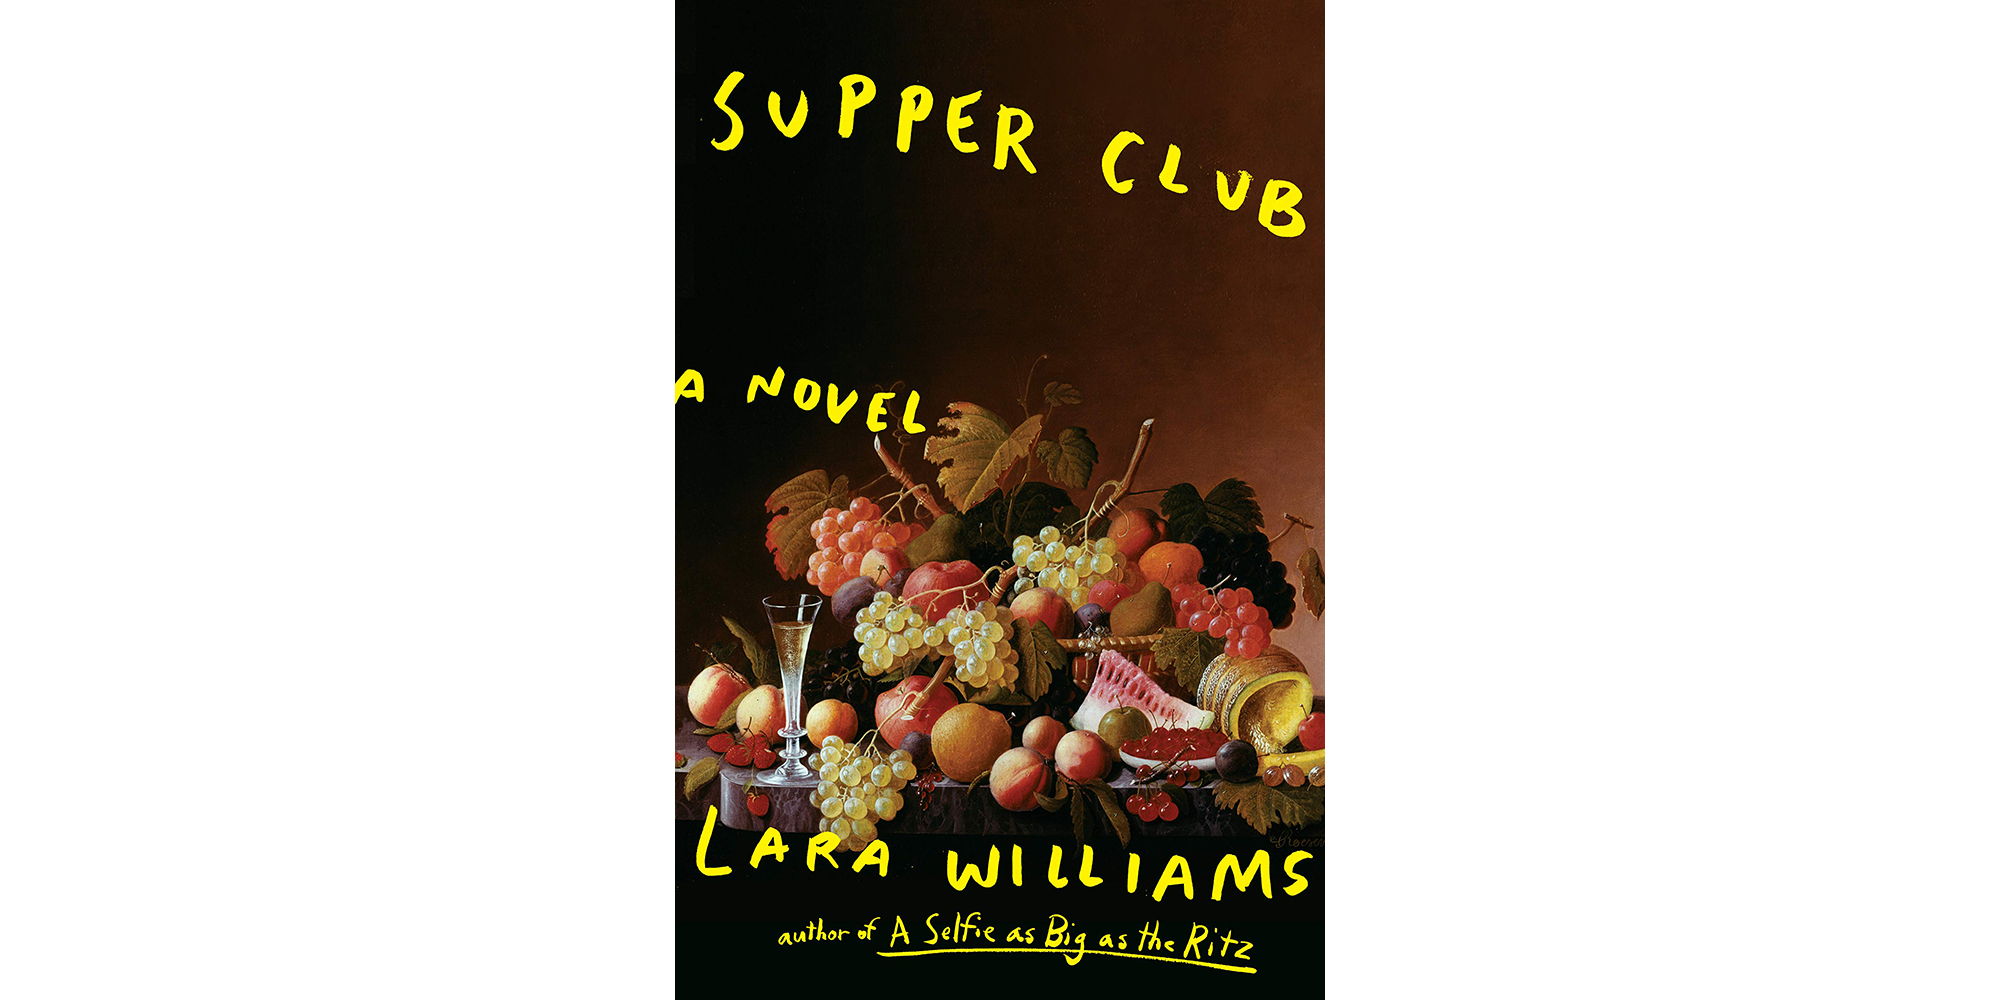 Supper Club, by Lara Williams